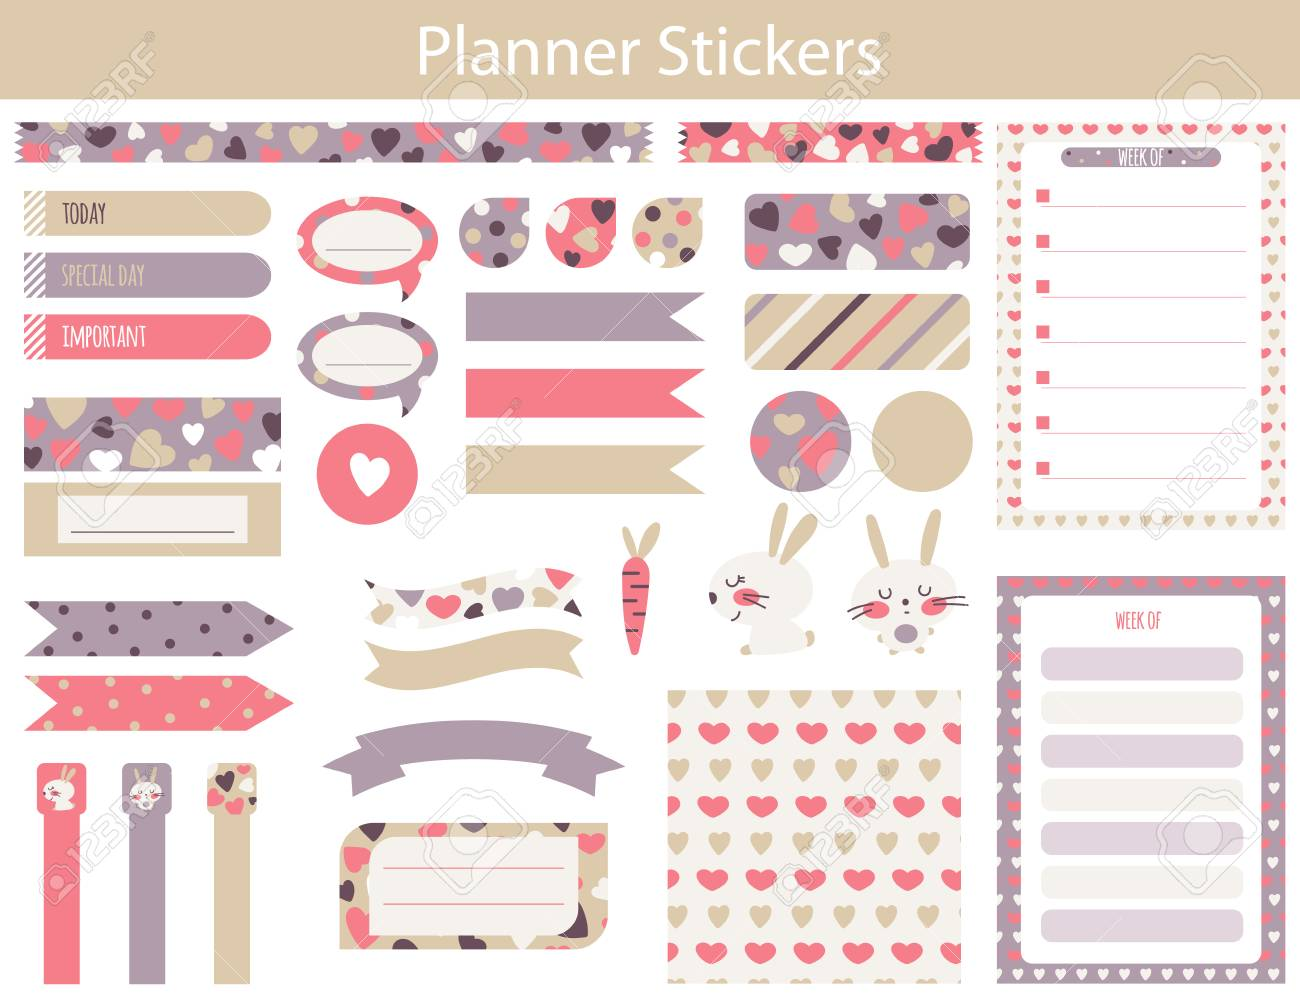 Planner stickers with cute hare carrot and hearts in simple kids cartoon style weekly